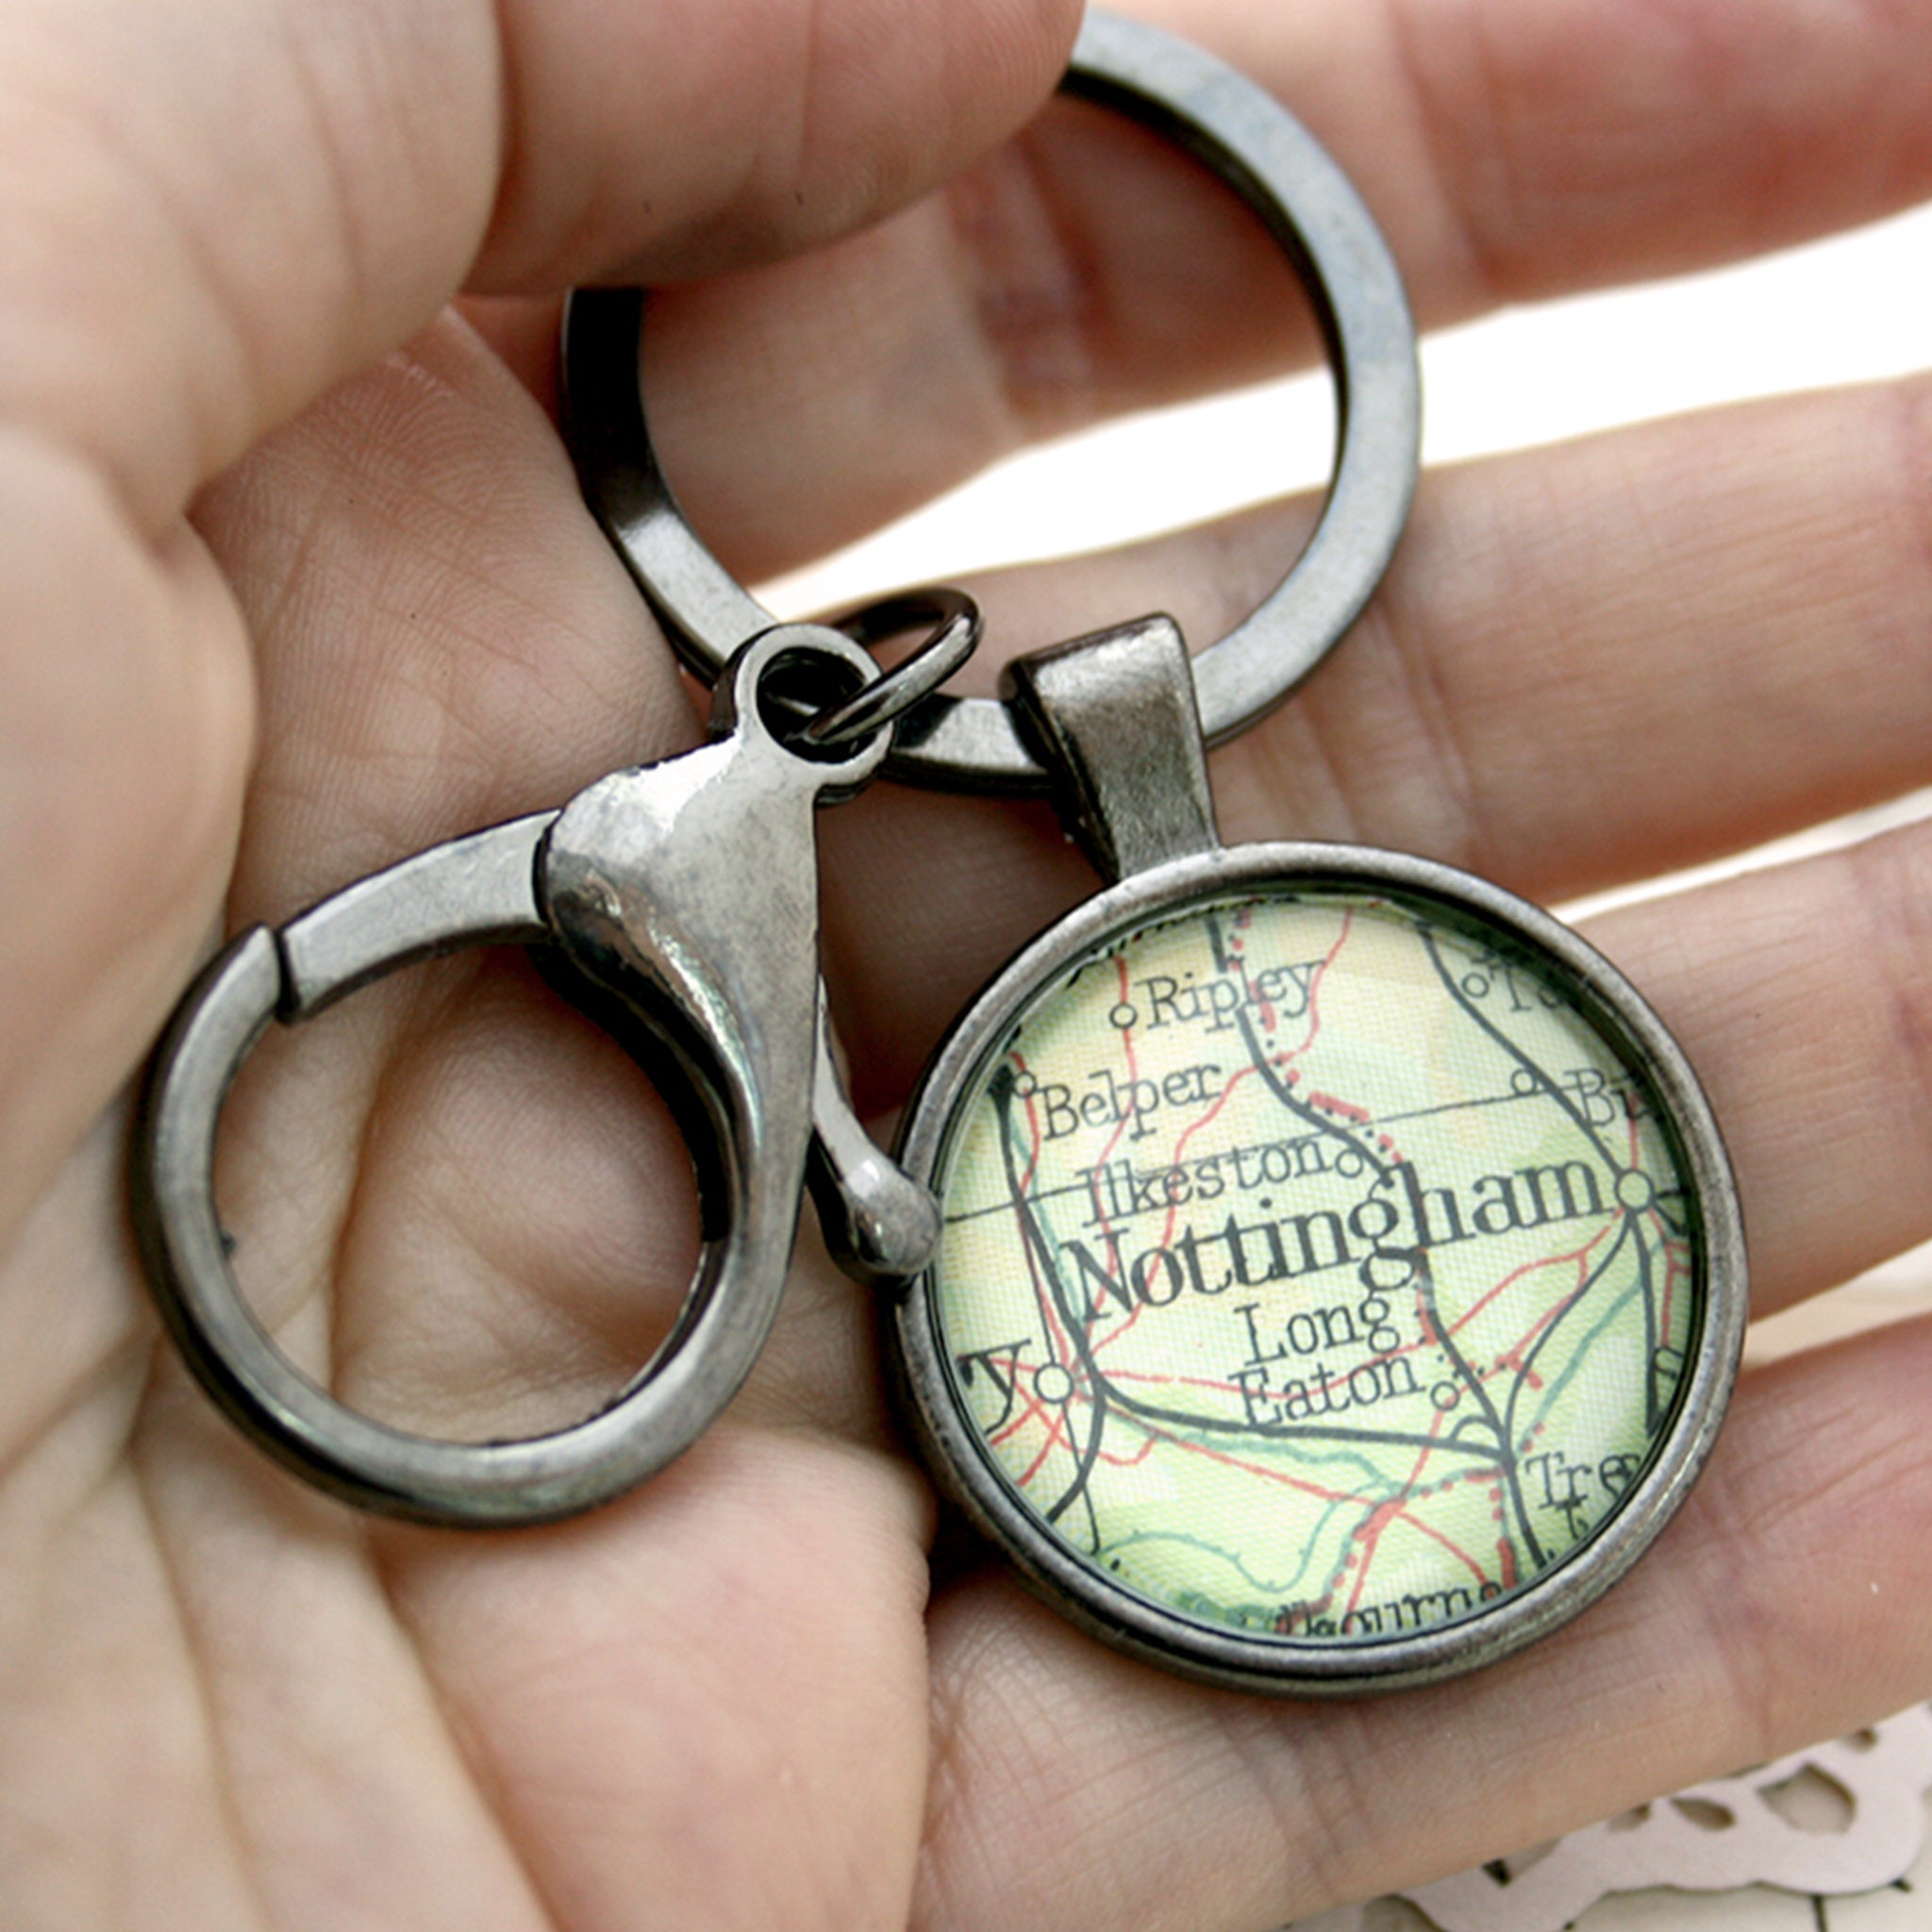 Hold in hand Personalised keyring in gunmetal black color featuring map of Nottingham